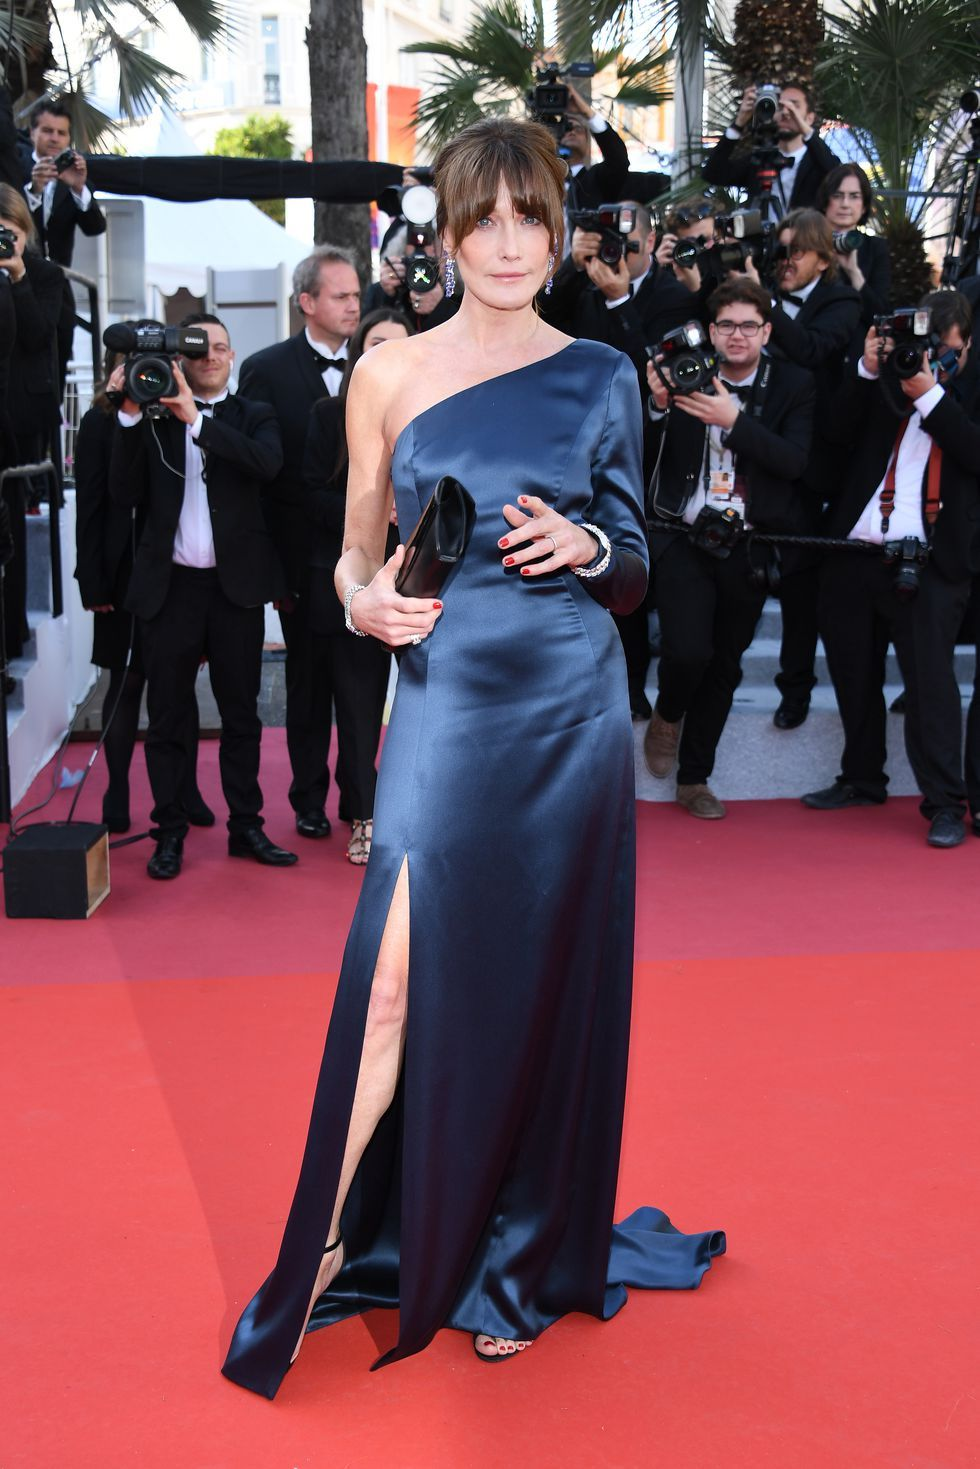 Carla Bruni At the premiere of Les Misérables on May 15, 2019.